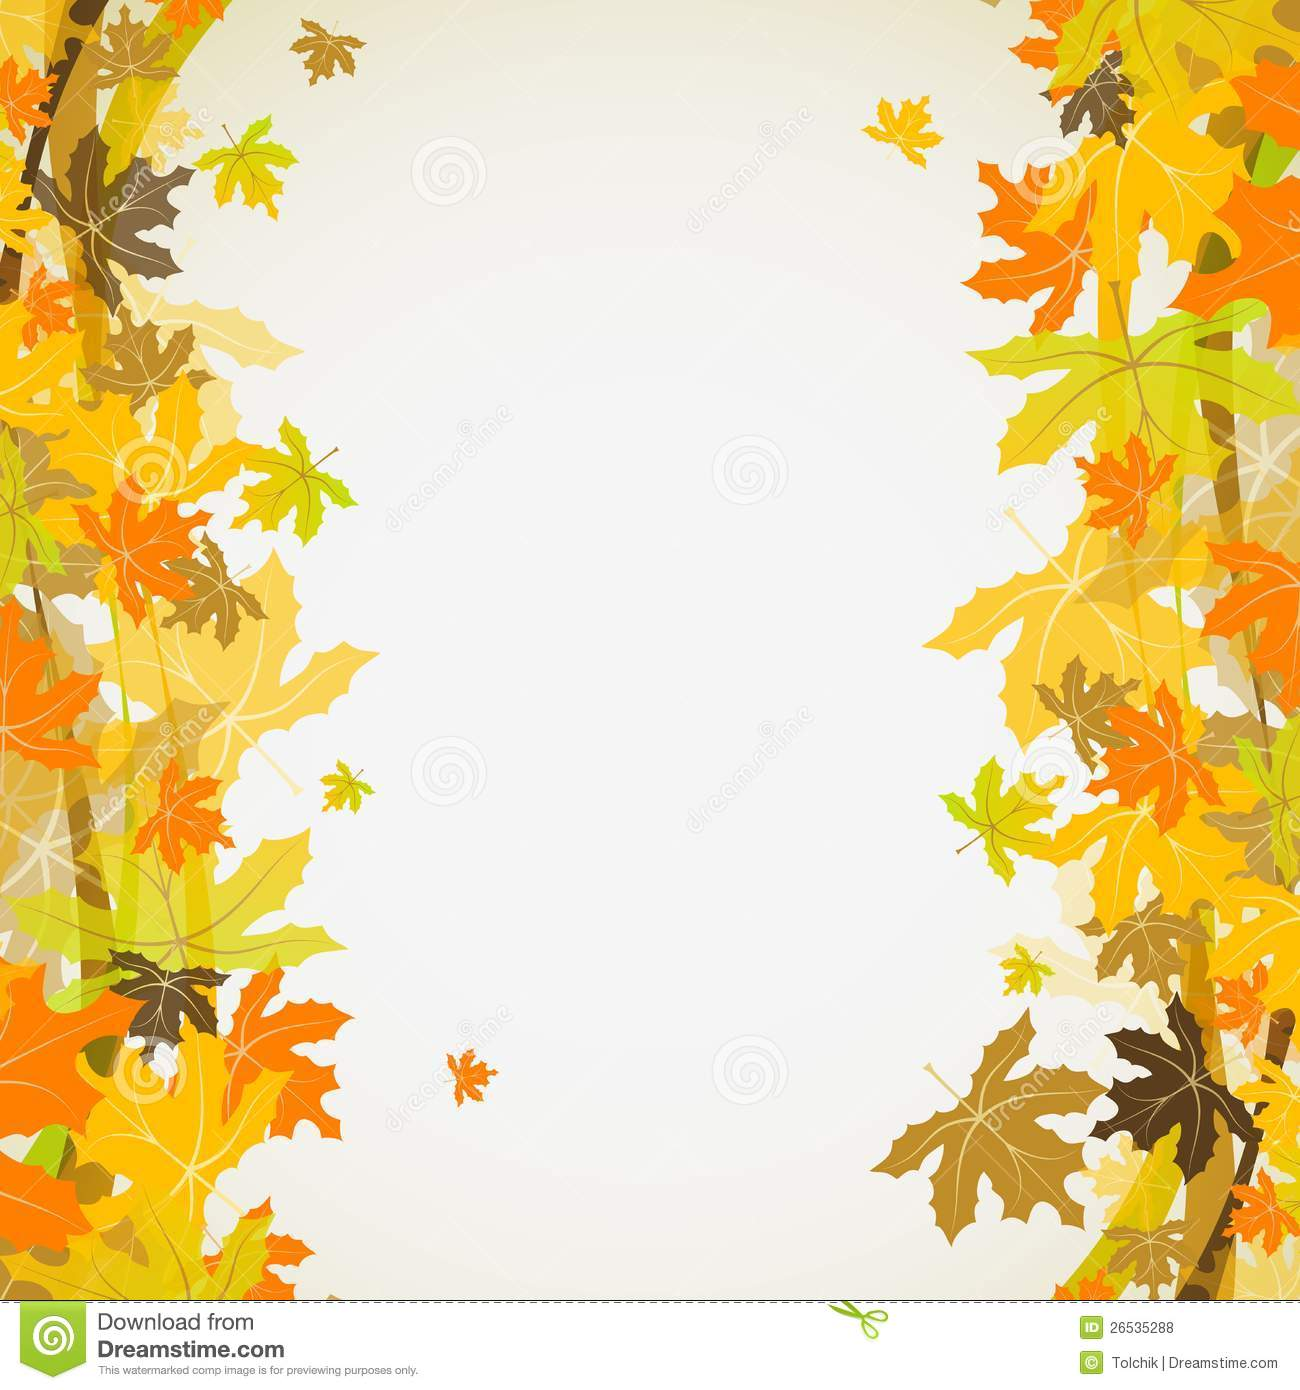 Fall Wallpaper Images Free: Maple Autumn Background, Vector Stock Vector